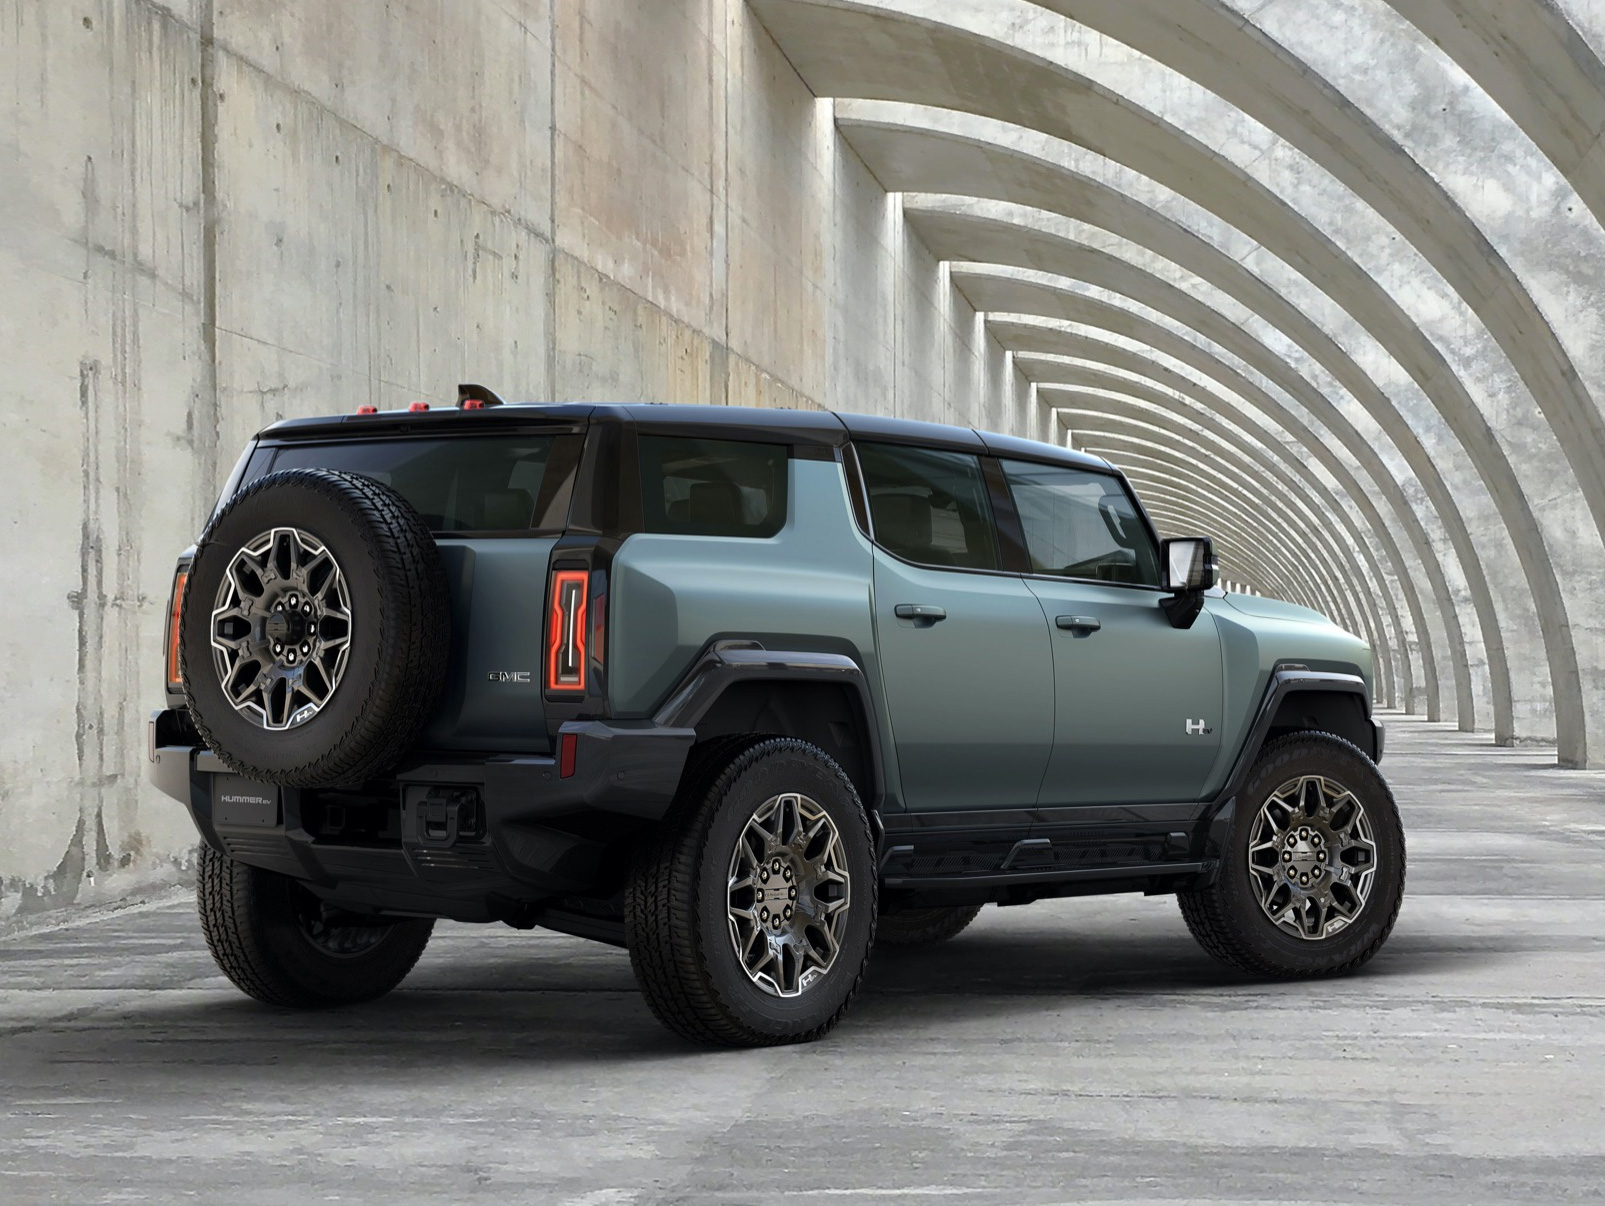 GM Reveals More on 2024 Hummer EV SUV at werd.com